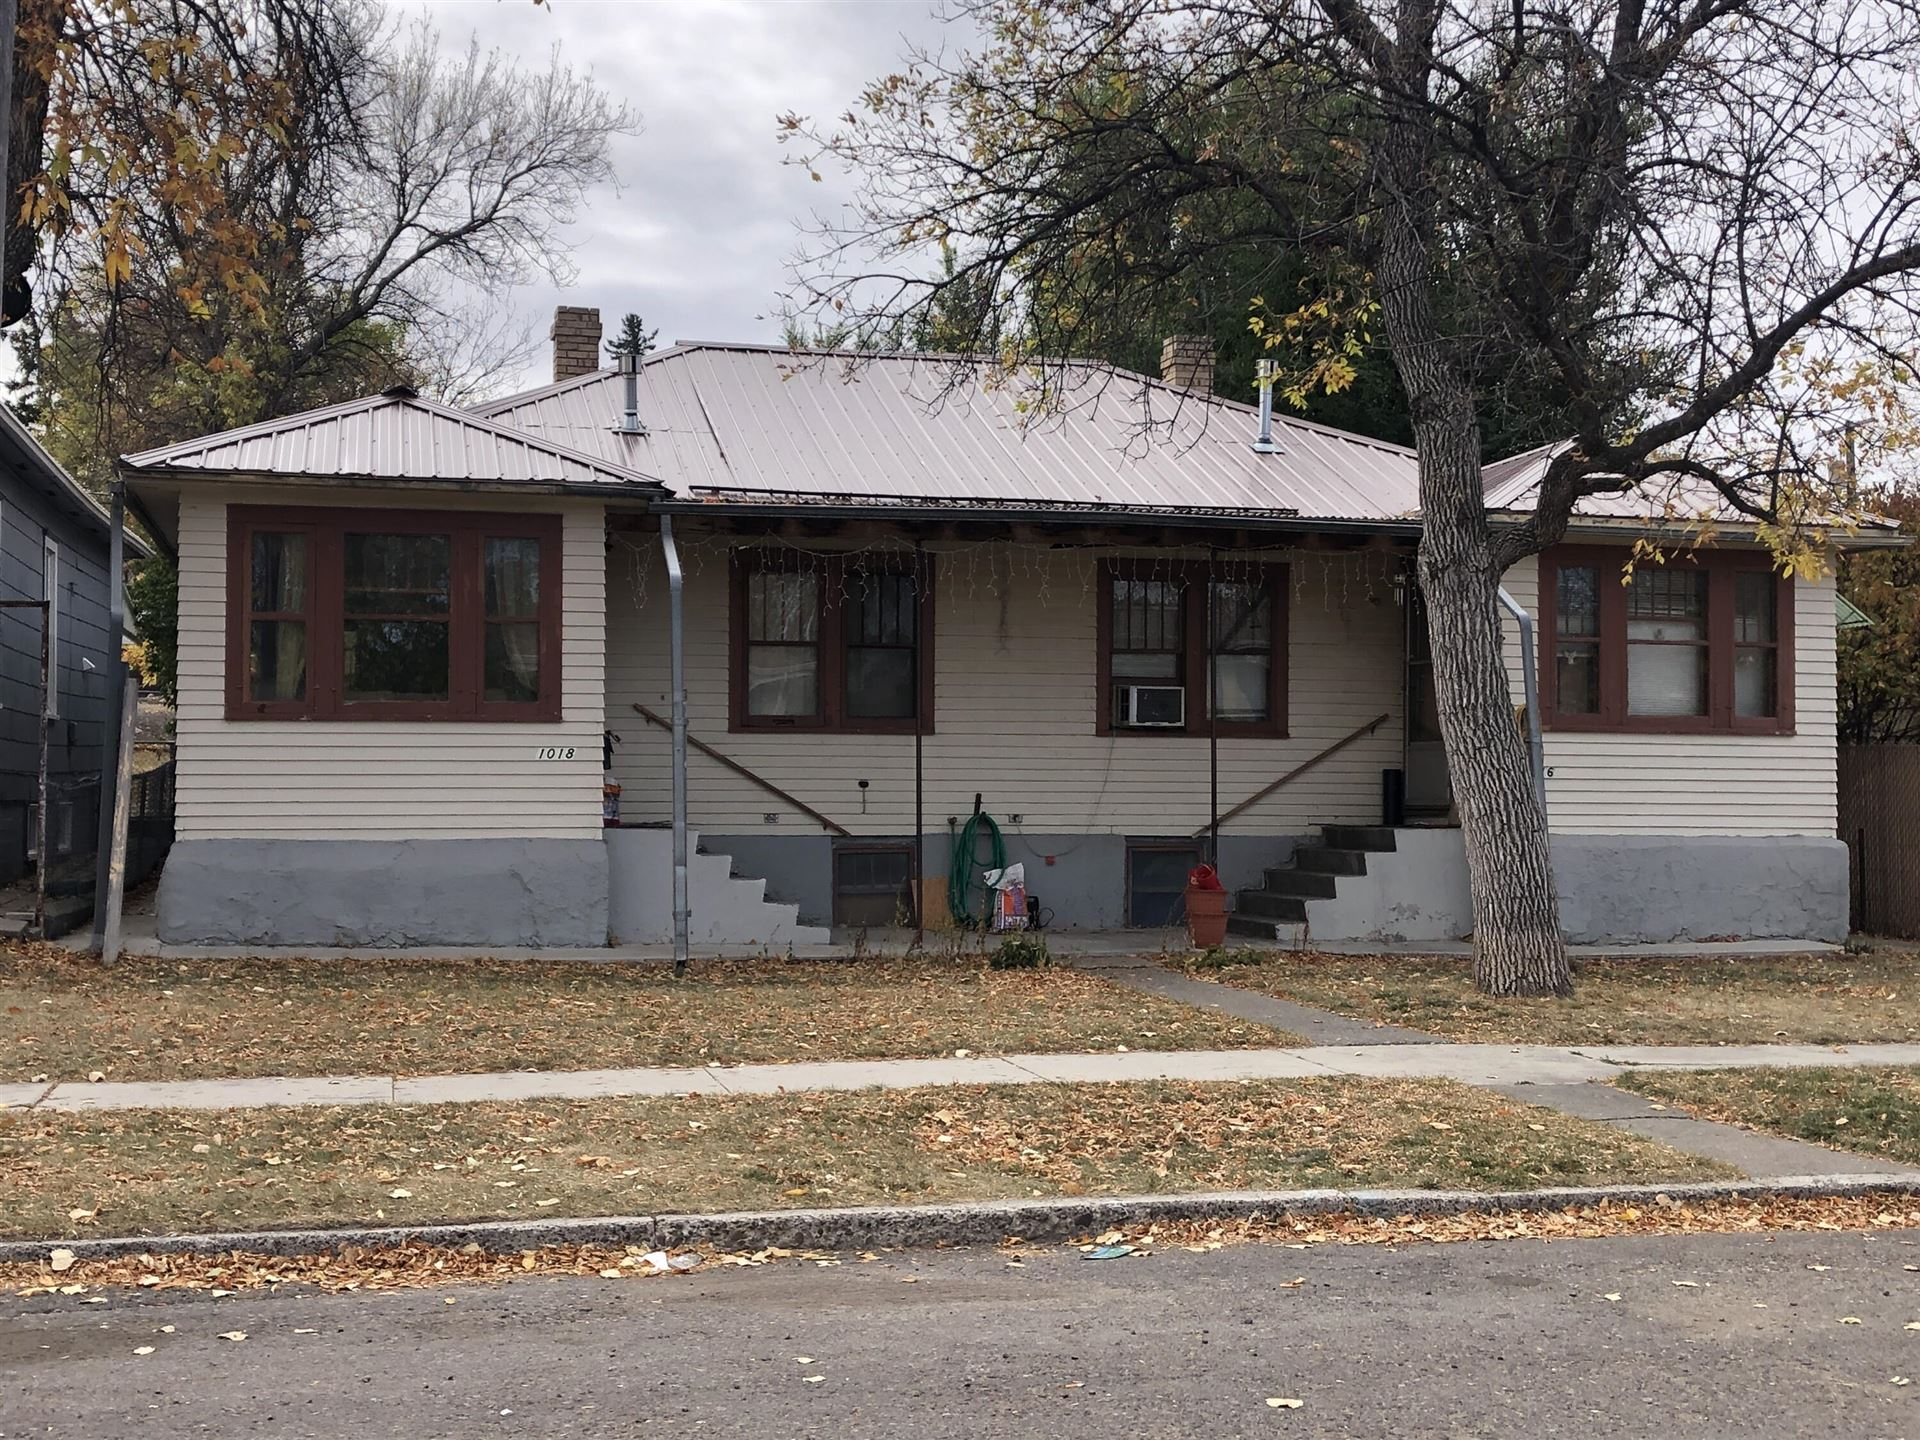 Photo of 1016/1018 8th Avenue South, Great Falls, MT 59405 (MLS # 22116169)